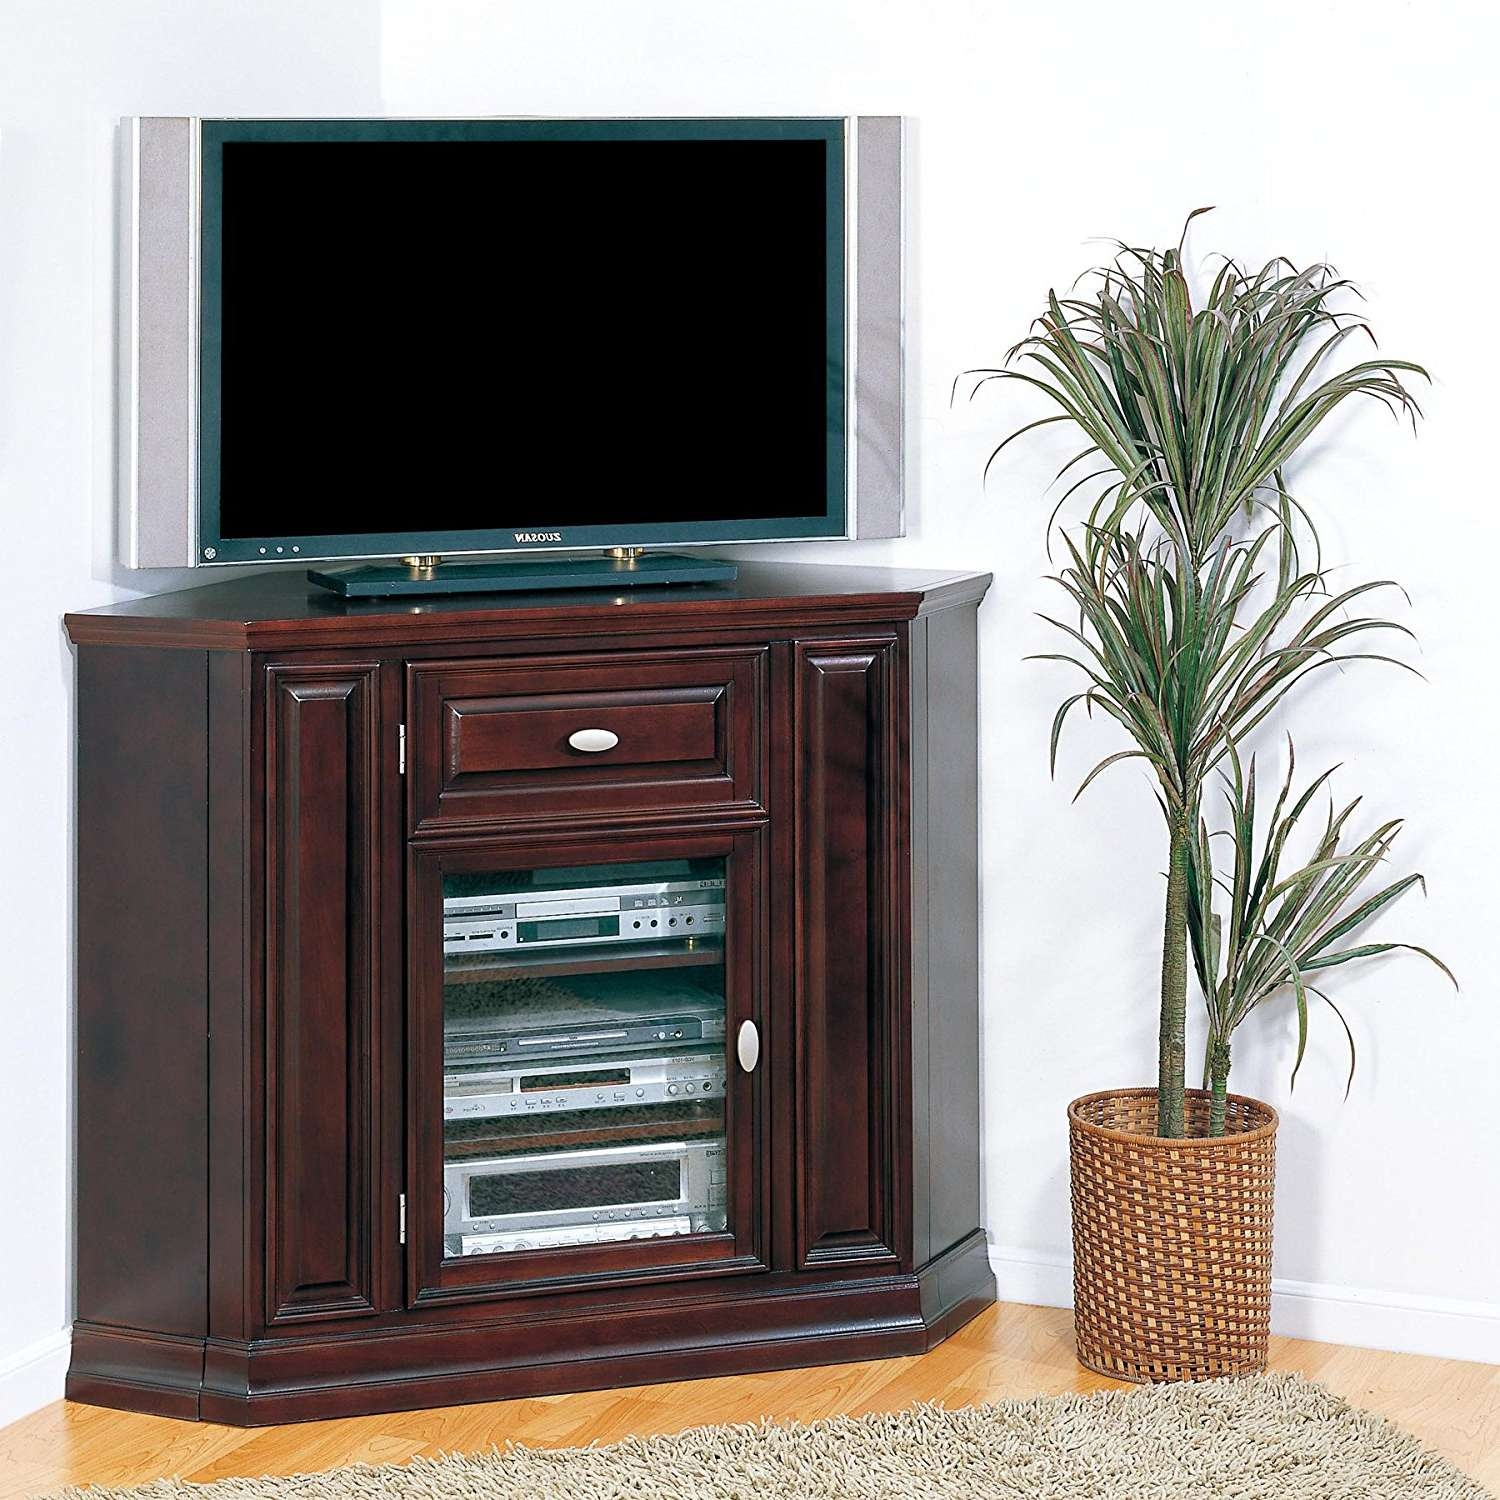 Tv Stand : Literarywondrous Tv Stand Corner Photos Inspirations In Tall Tv Cabinets Corner Unit (View 17 of 20)